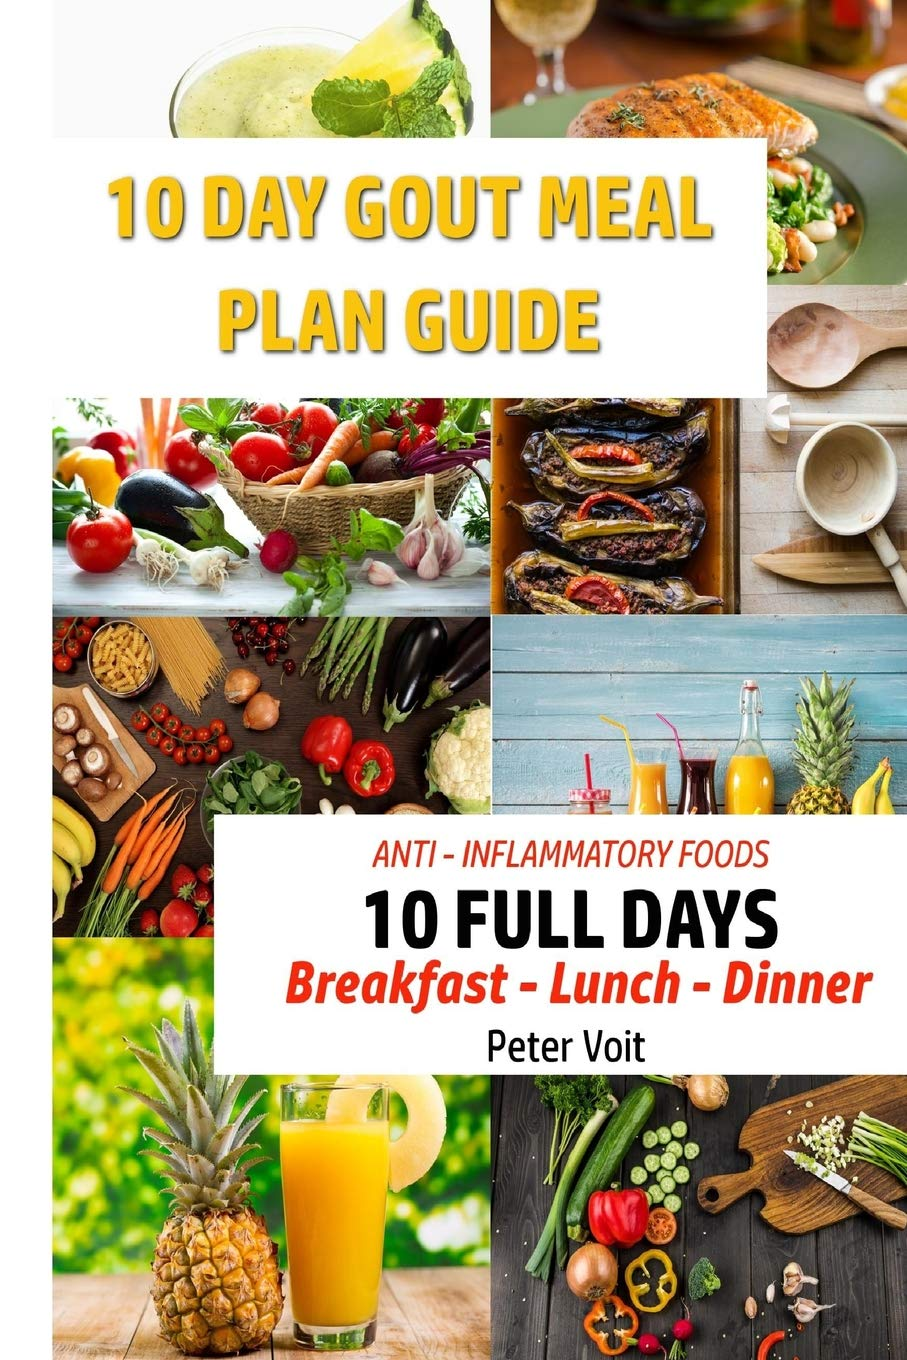 diet plan for patients with gout